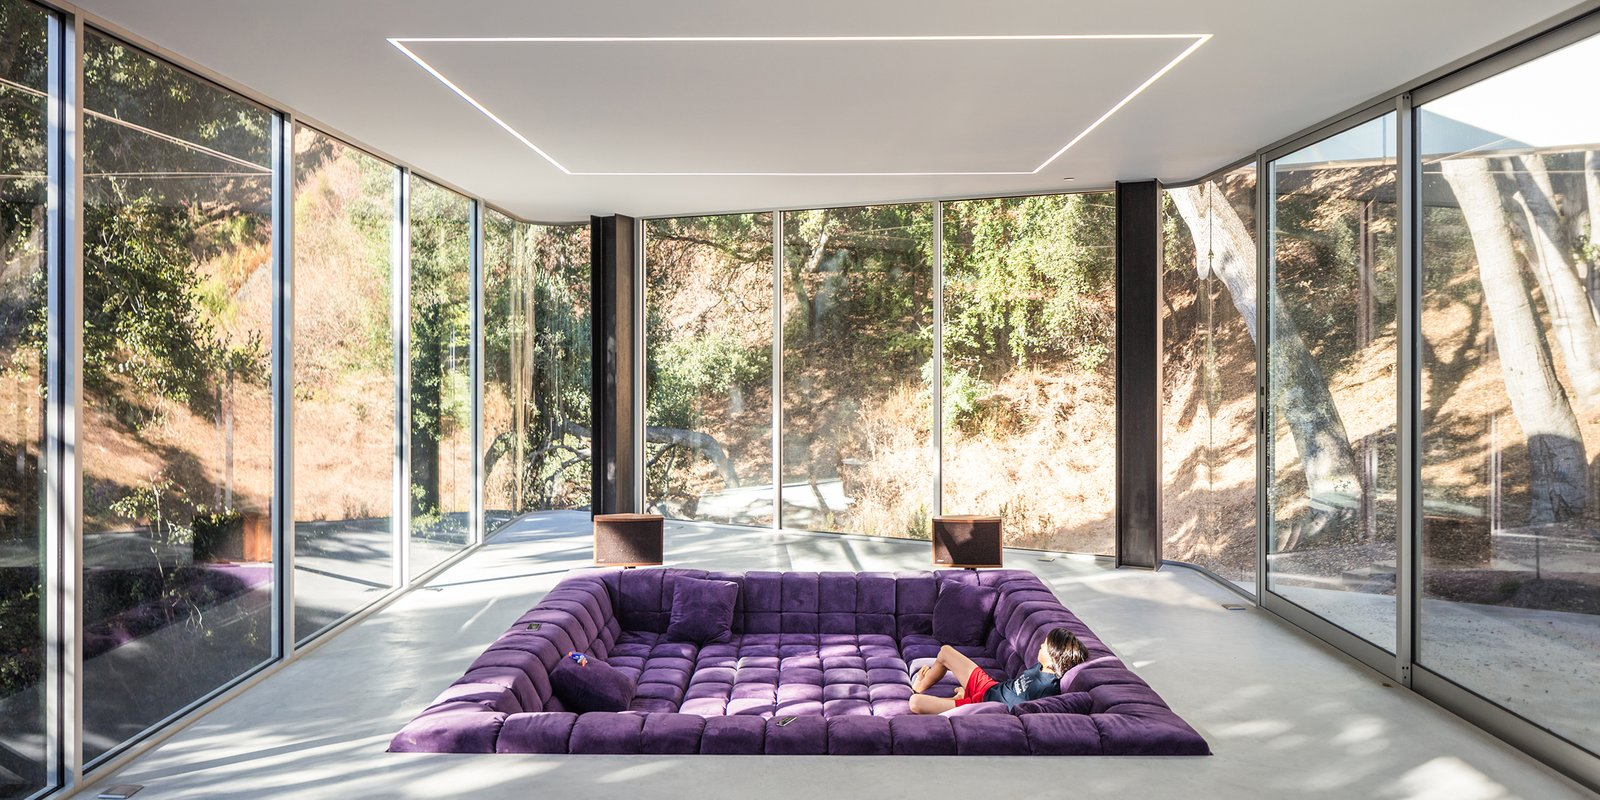 Living Room, Sofa, and Concrete Floor - Cupertino, California Dwell Magazine : September / October 2017  Best Photos from The Conversation Pit Makes a Much-Appreciated Comeback at an Ultramodern Home in Cupertino